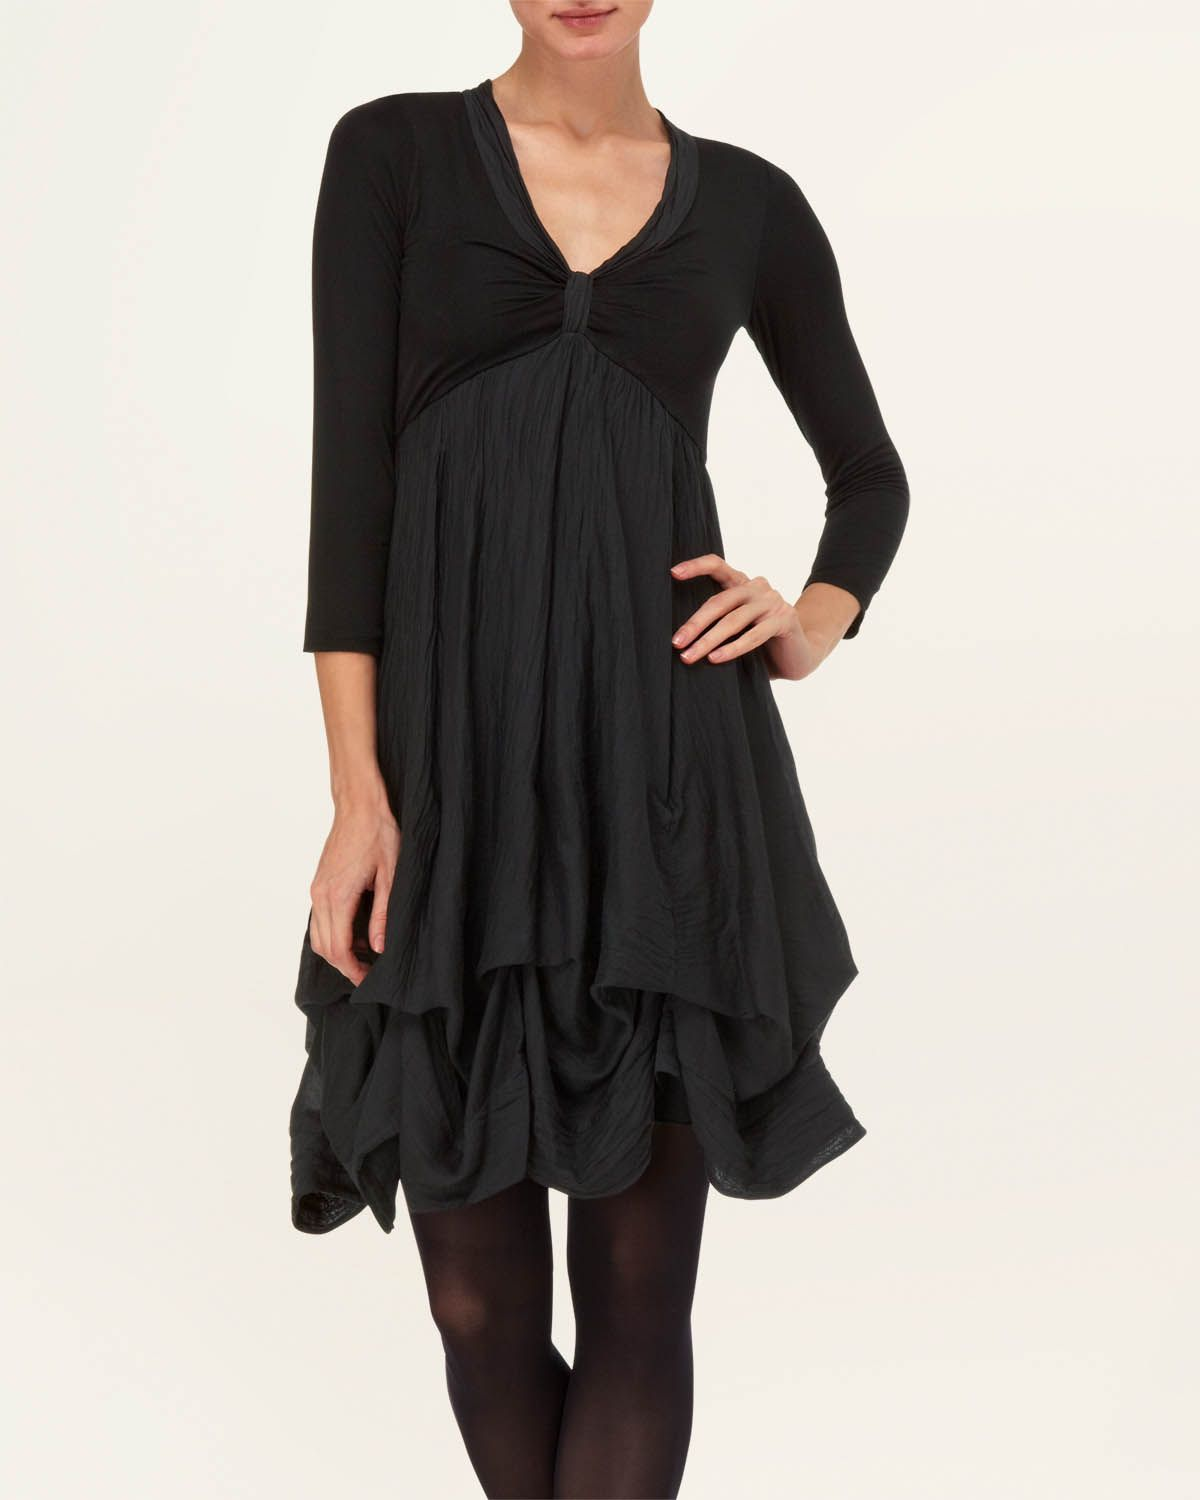 Ruthie 3/4 Sleeve Hook-Up Dress